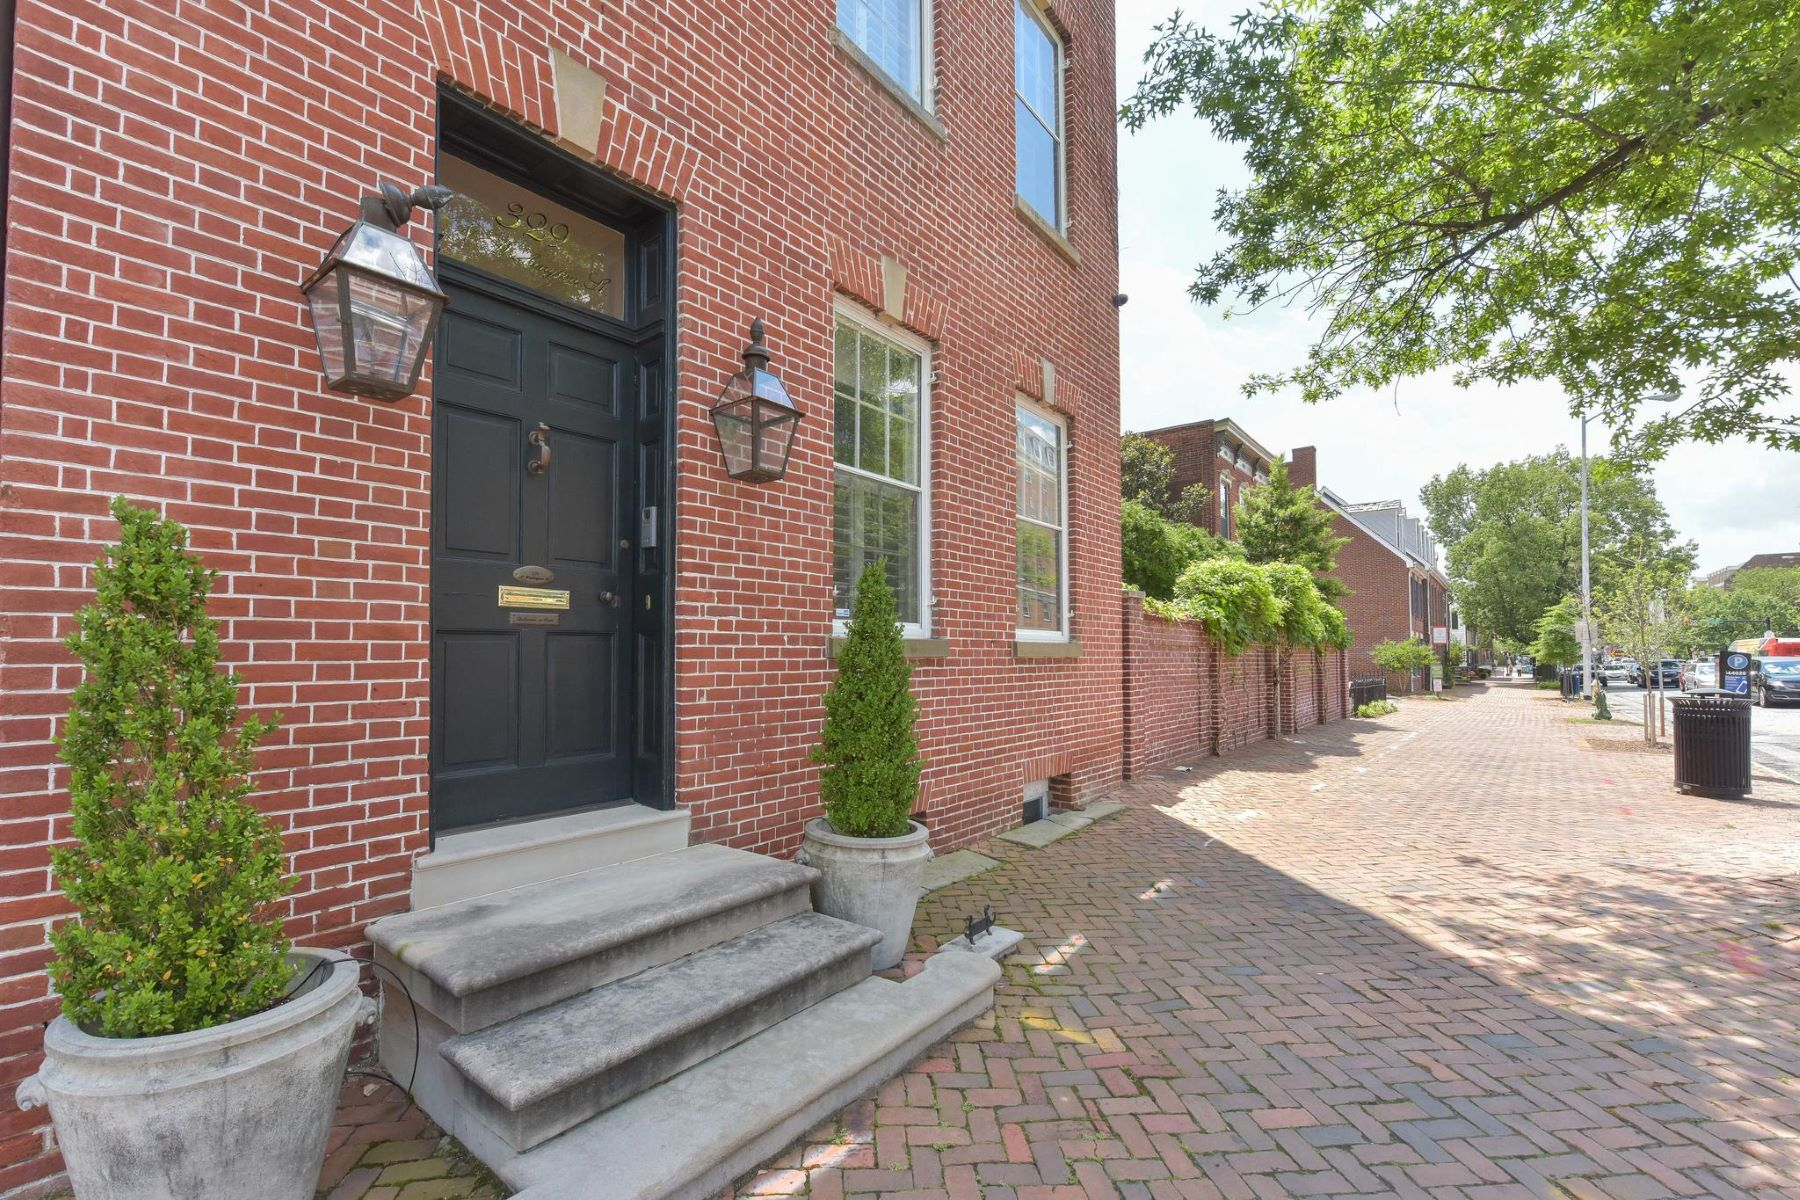 Single Family Homes for Active at 329 Washington St N Alexandria, Virginia 22314 United States